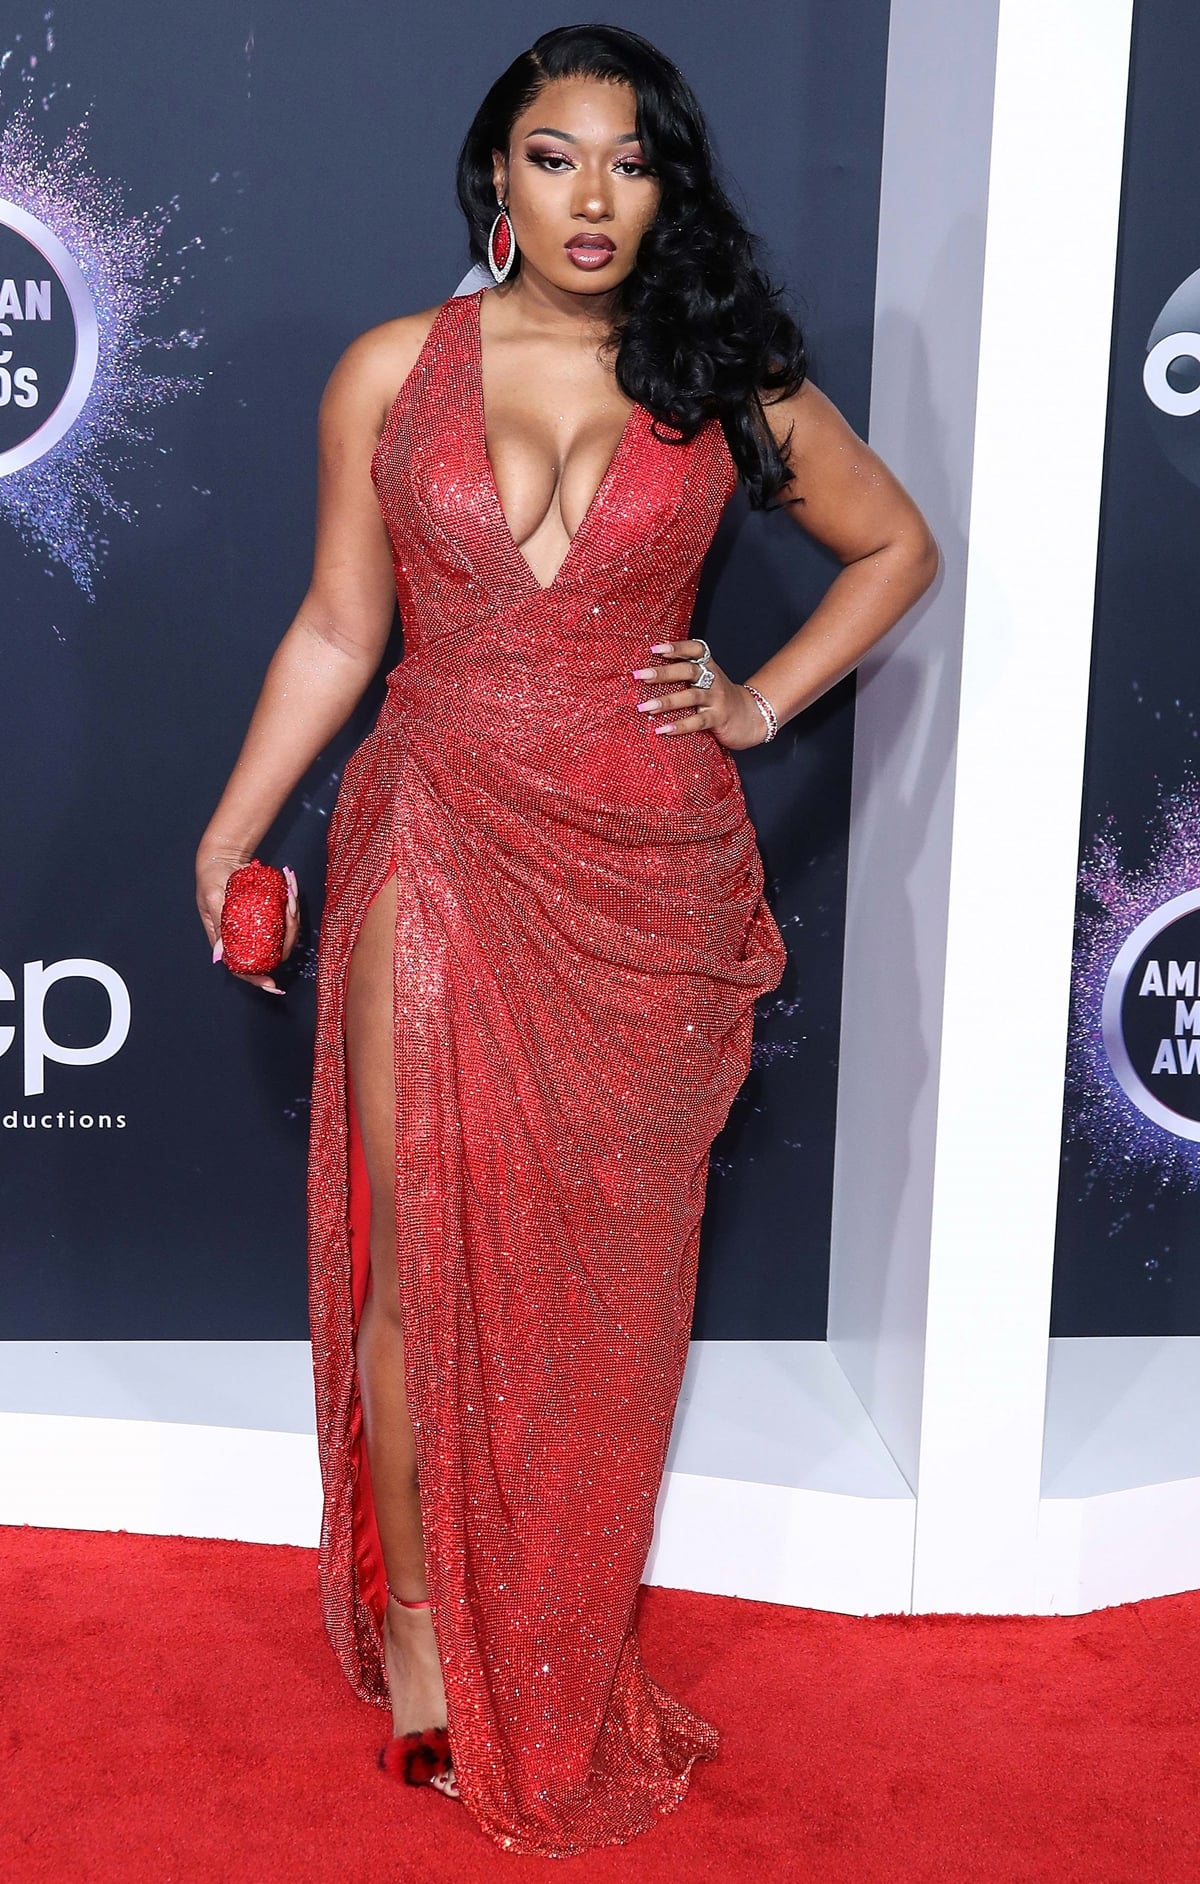 Megan Thee Stallion flaunts her cleavage in a red glitter maxi dress by LA-based fashion designer Bryan Hearns